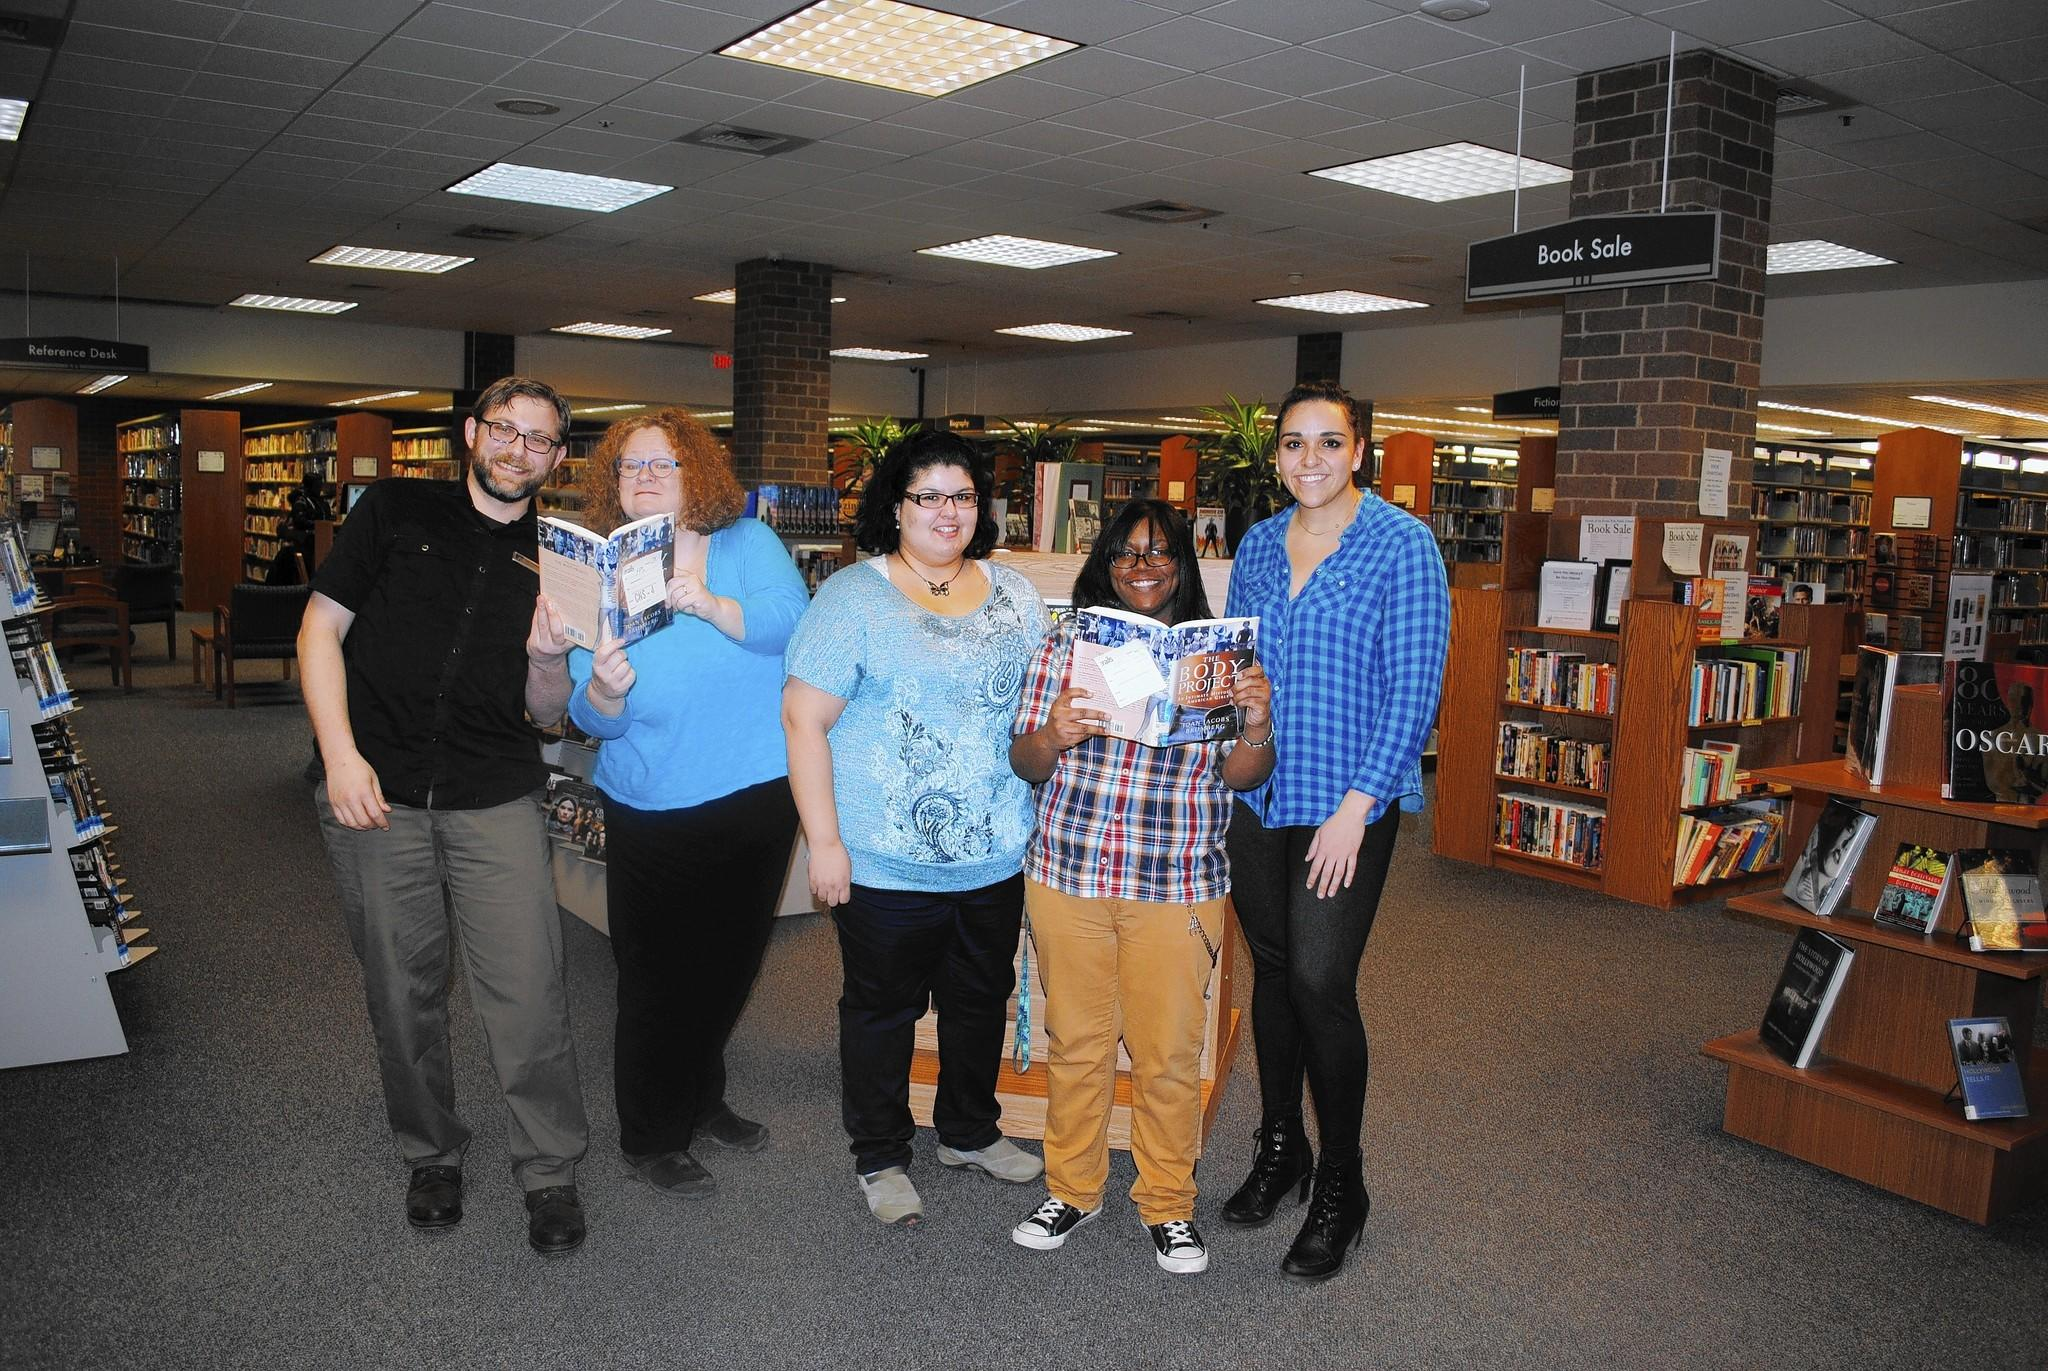 The Curiouser & Curiouser Book Book Group from Forest Park are a book club that uniquely focuses on nonfiction books.